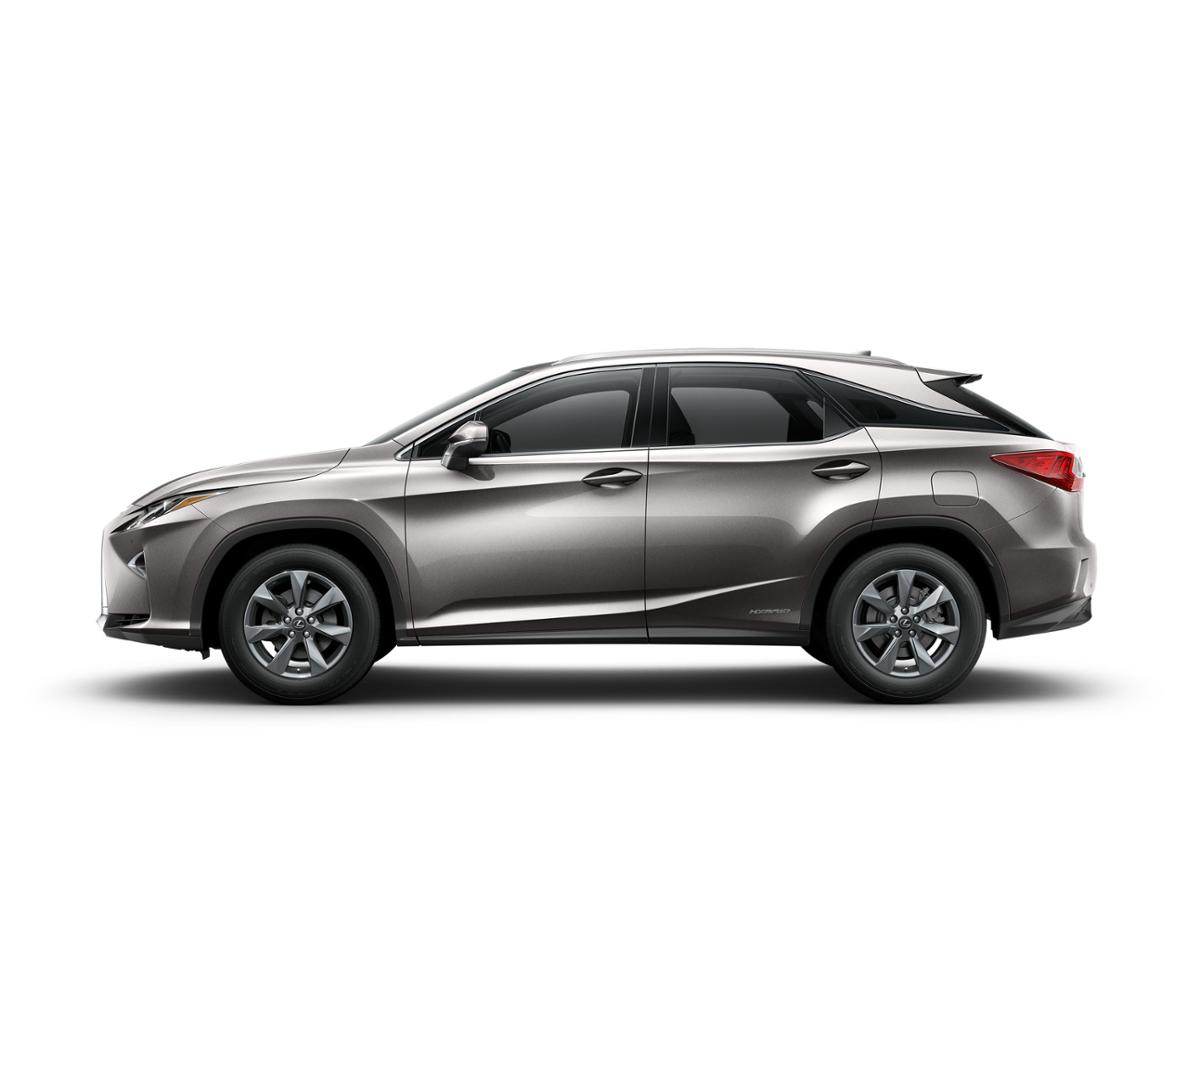 2019 Lexus RX 450h for sale near Los Angeles - Lexus of ...